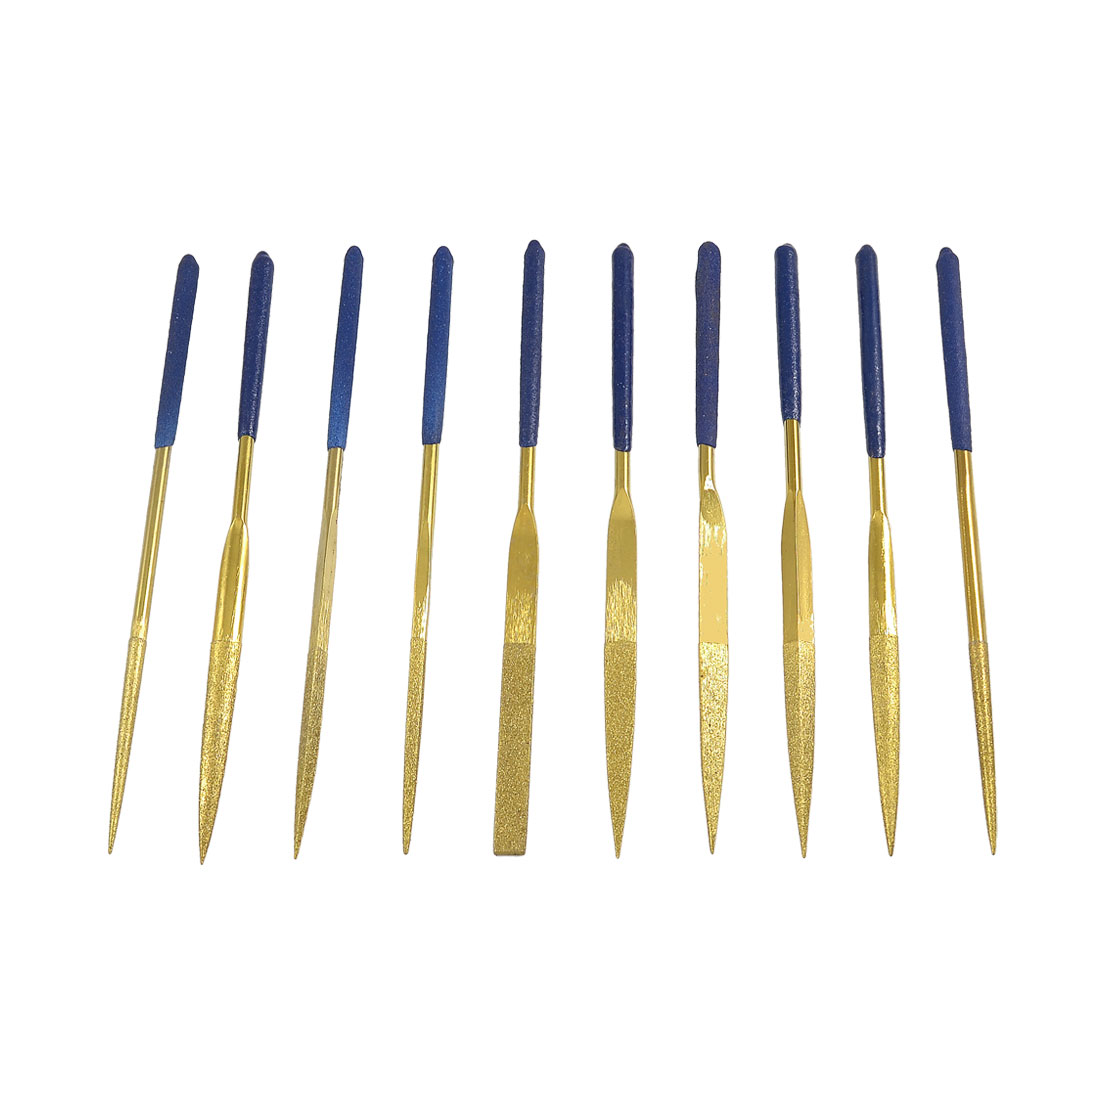 4mm x 160mm Blue Handle Diamond Coated Round Taper Needle File 10pcs